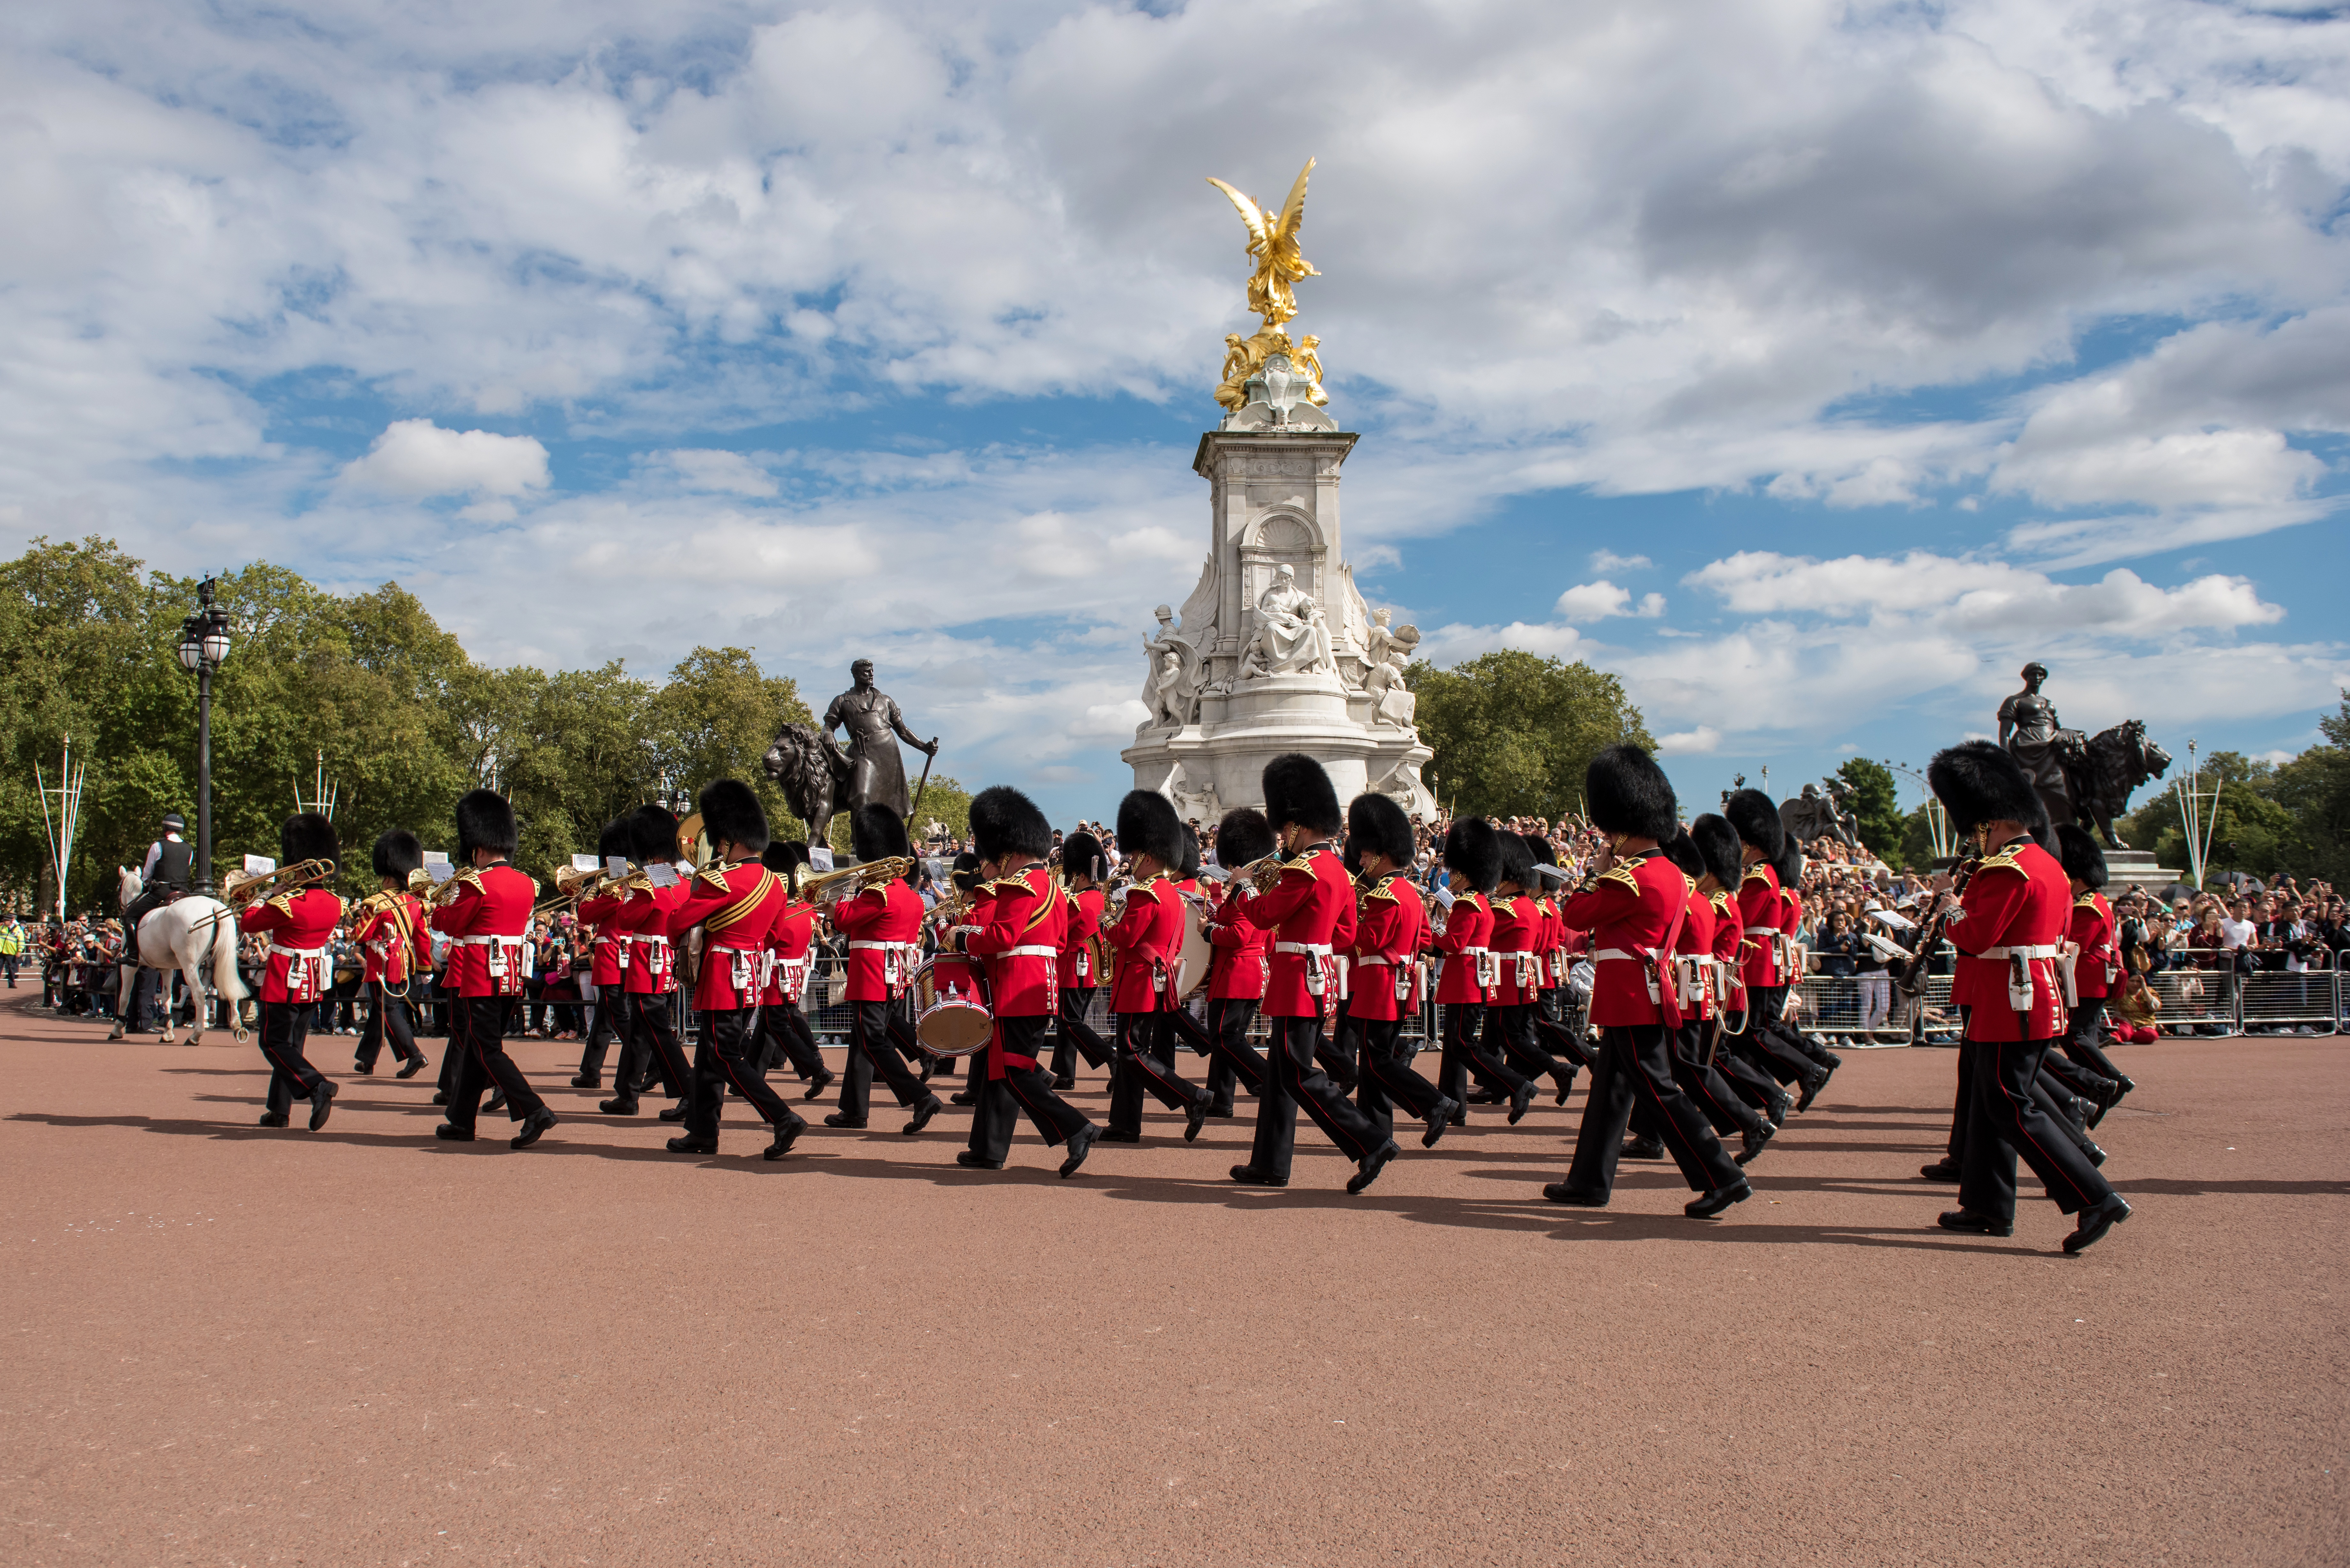 changing of the guards